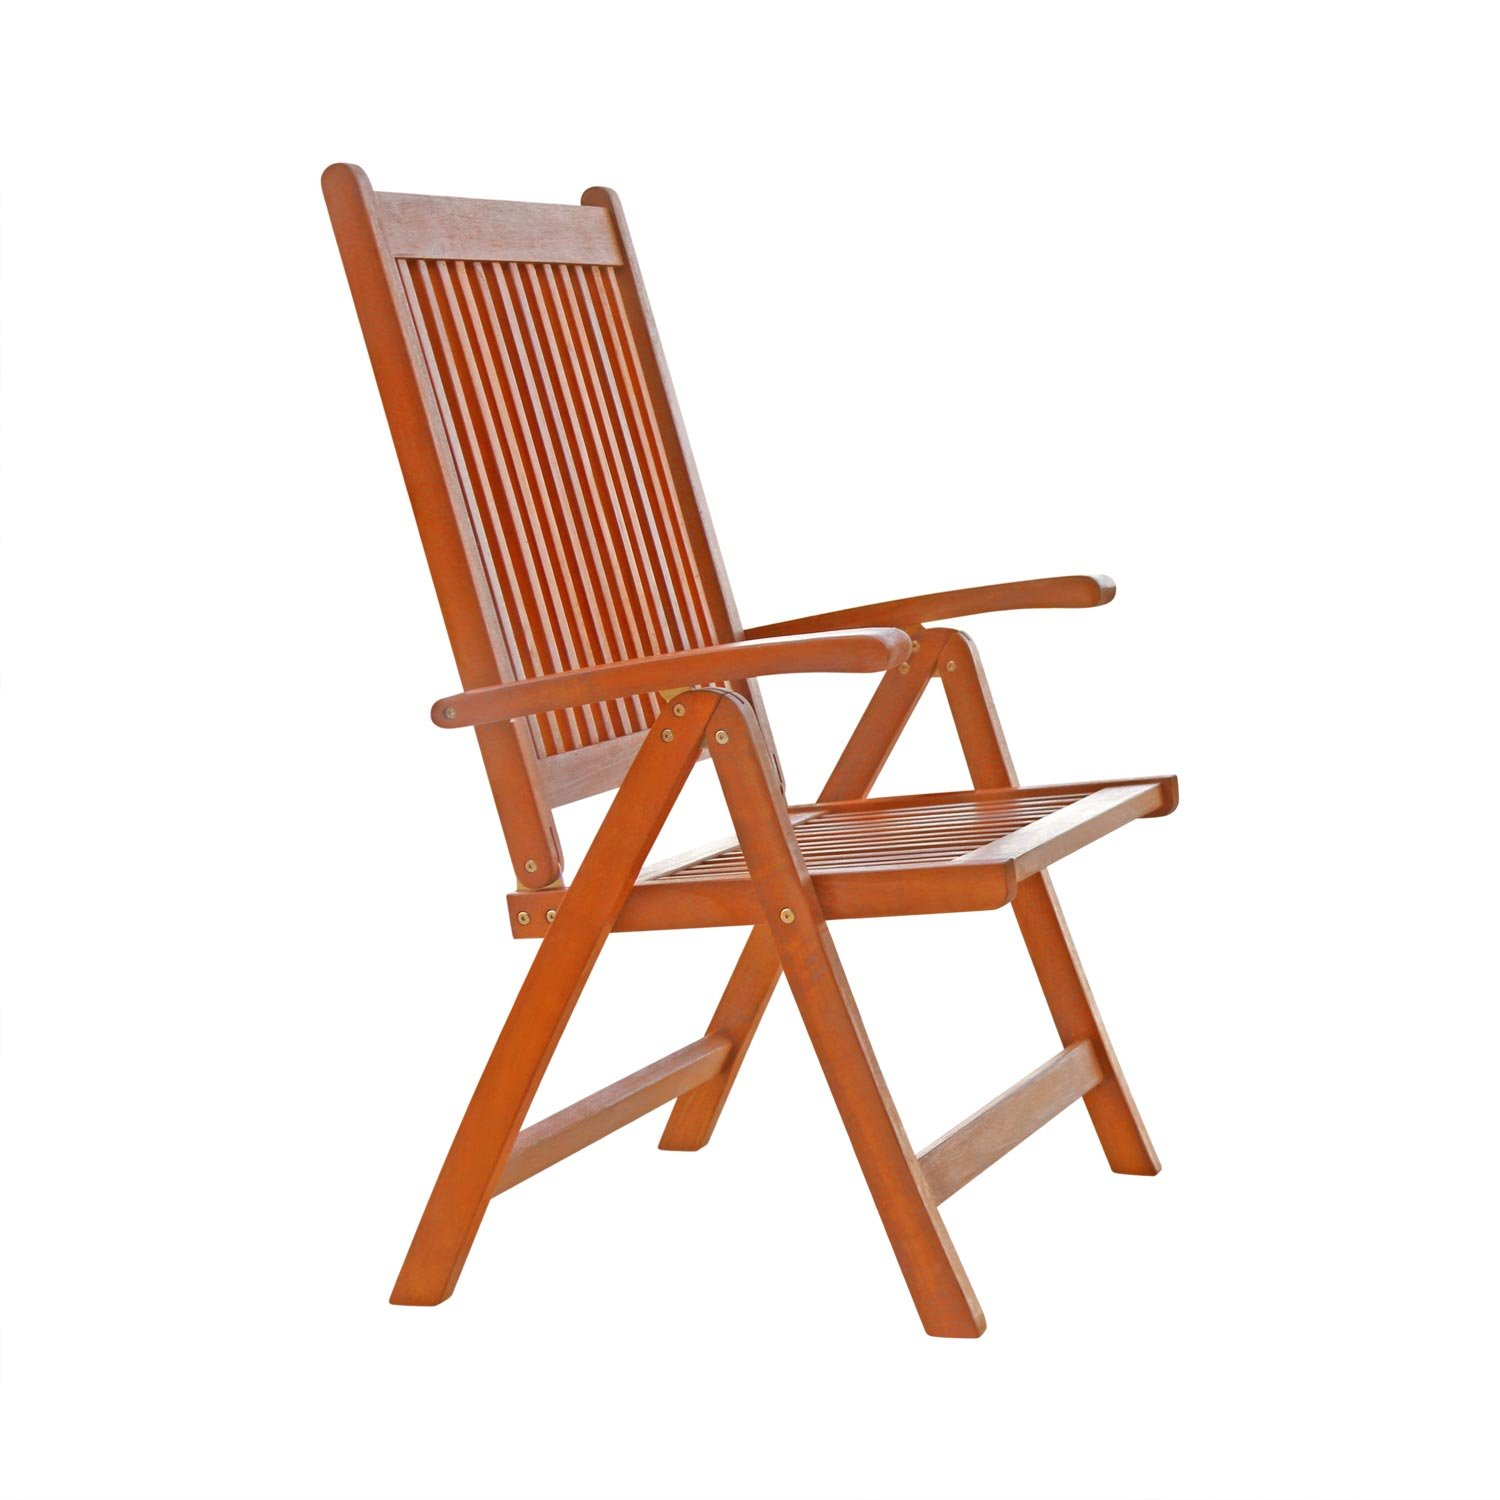 Wooden Chairs With Arms Interior Design